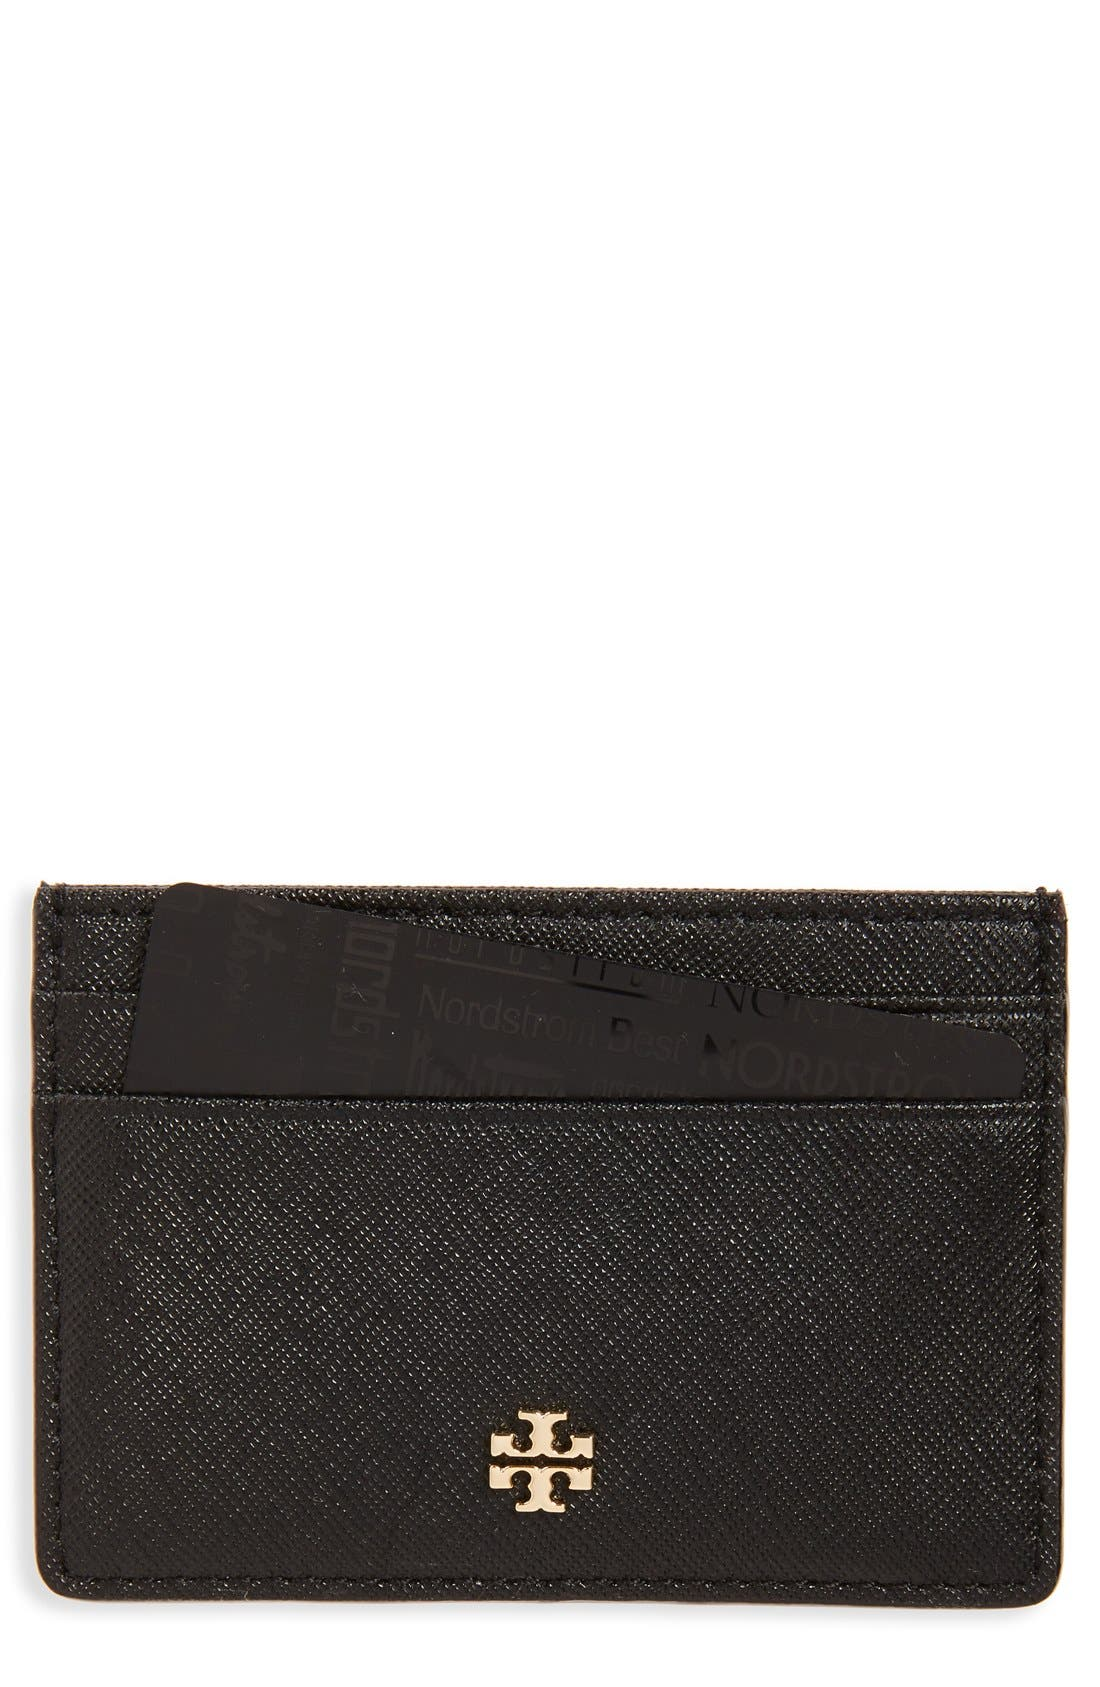 'Robinson' Slim Saffiano Leather Card Case,                         Main,                         color, 001